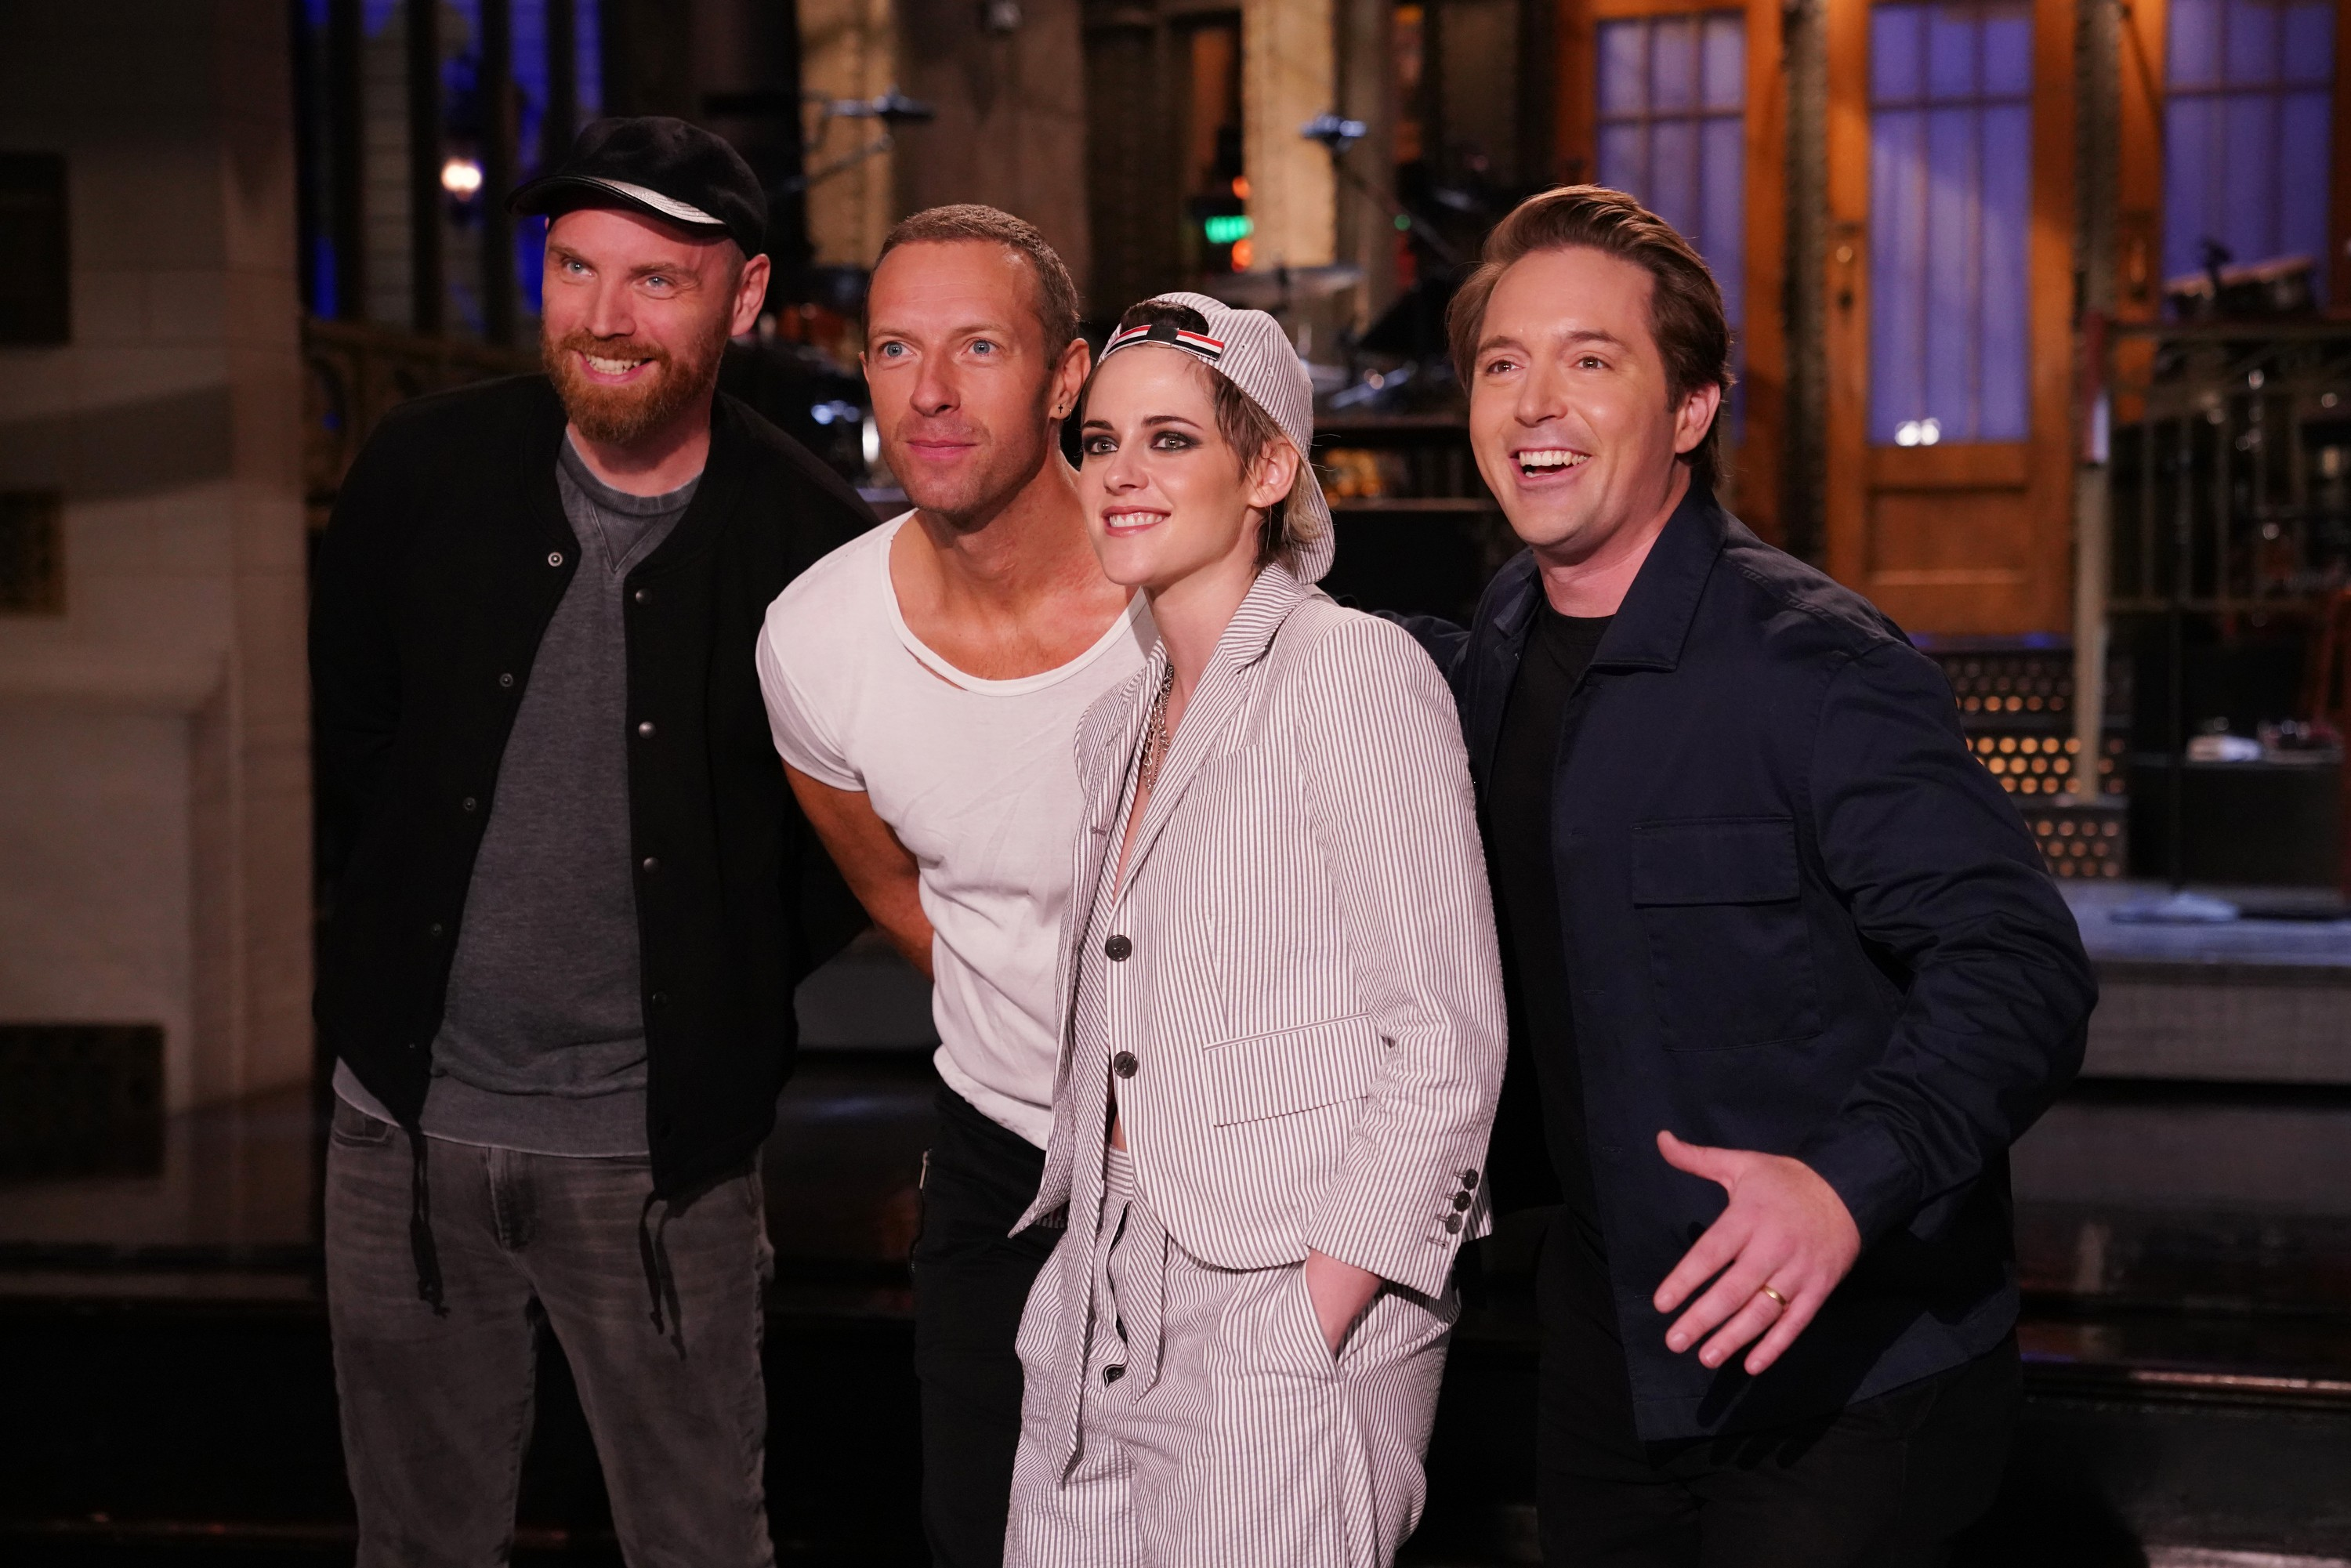 coldplay-perform-orphan-everyday-life-snl-performance-watch